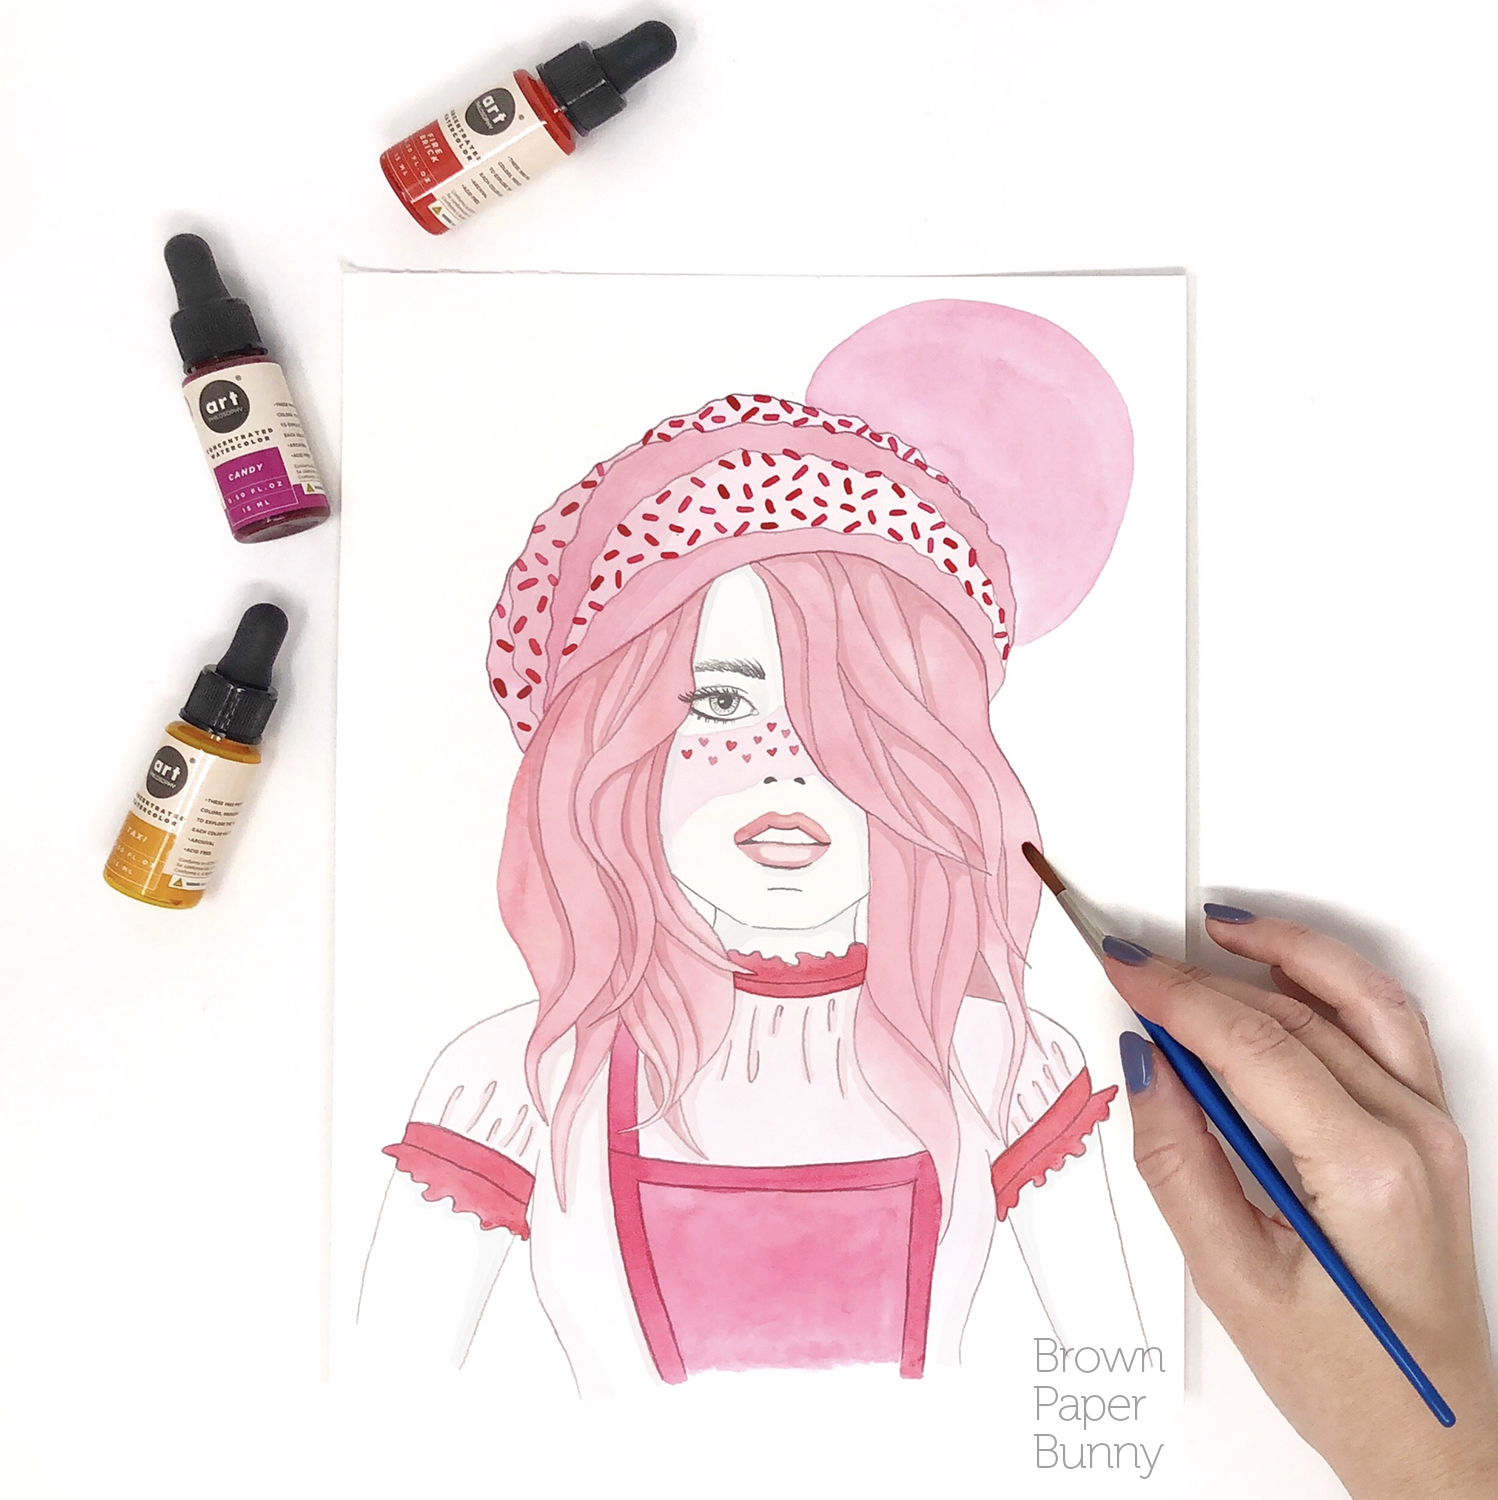 Watercolor fashion illustration created for Prima Watercolors, to launch their new liquid watercolor range.